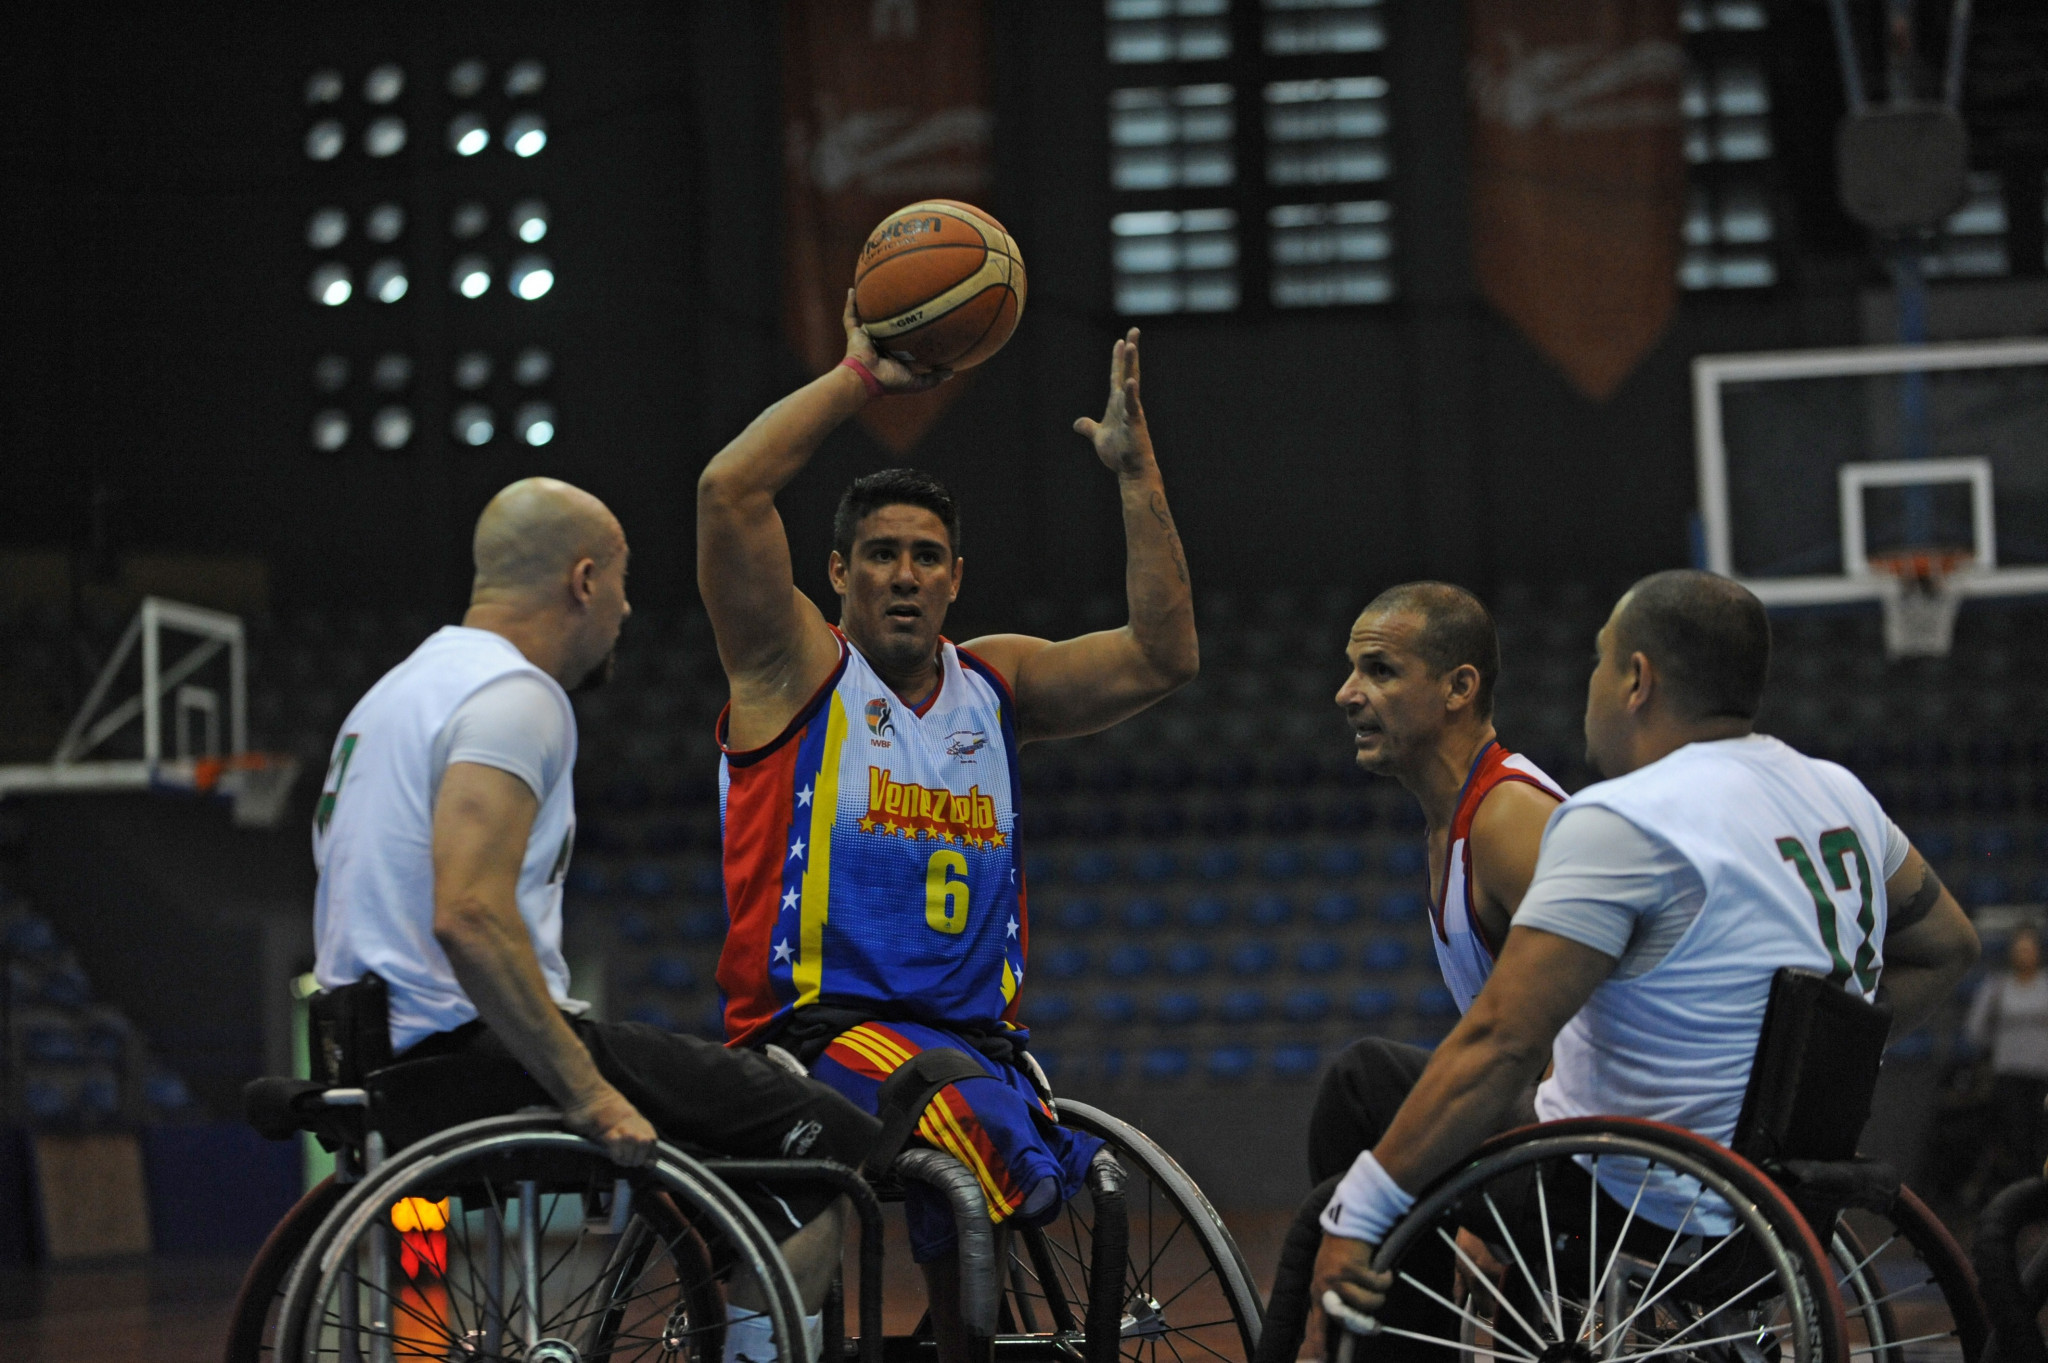 The IWBF welcomed Venezuela as a new member ©Getty Images